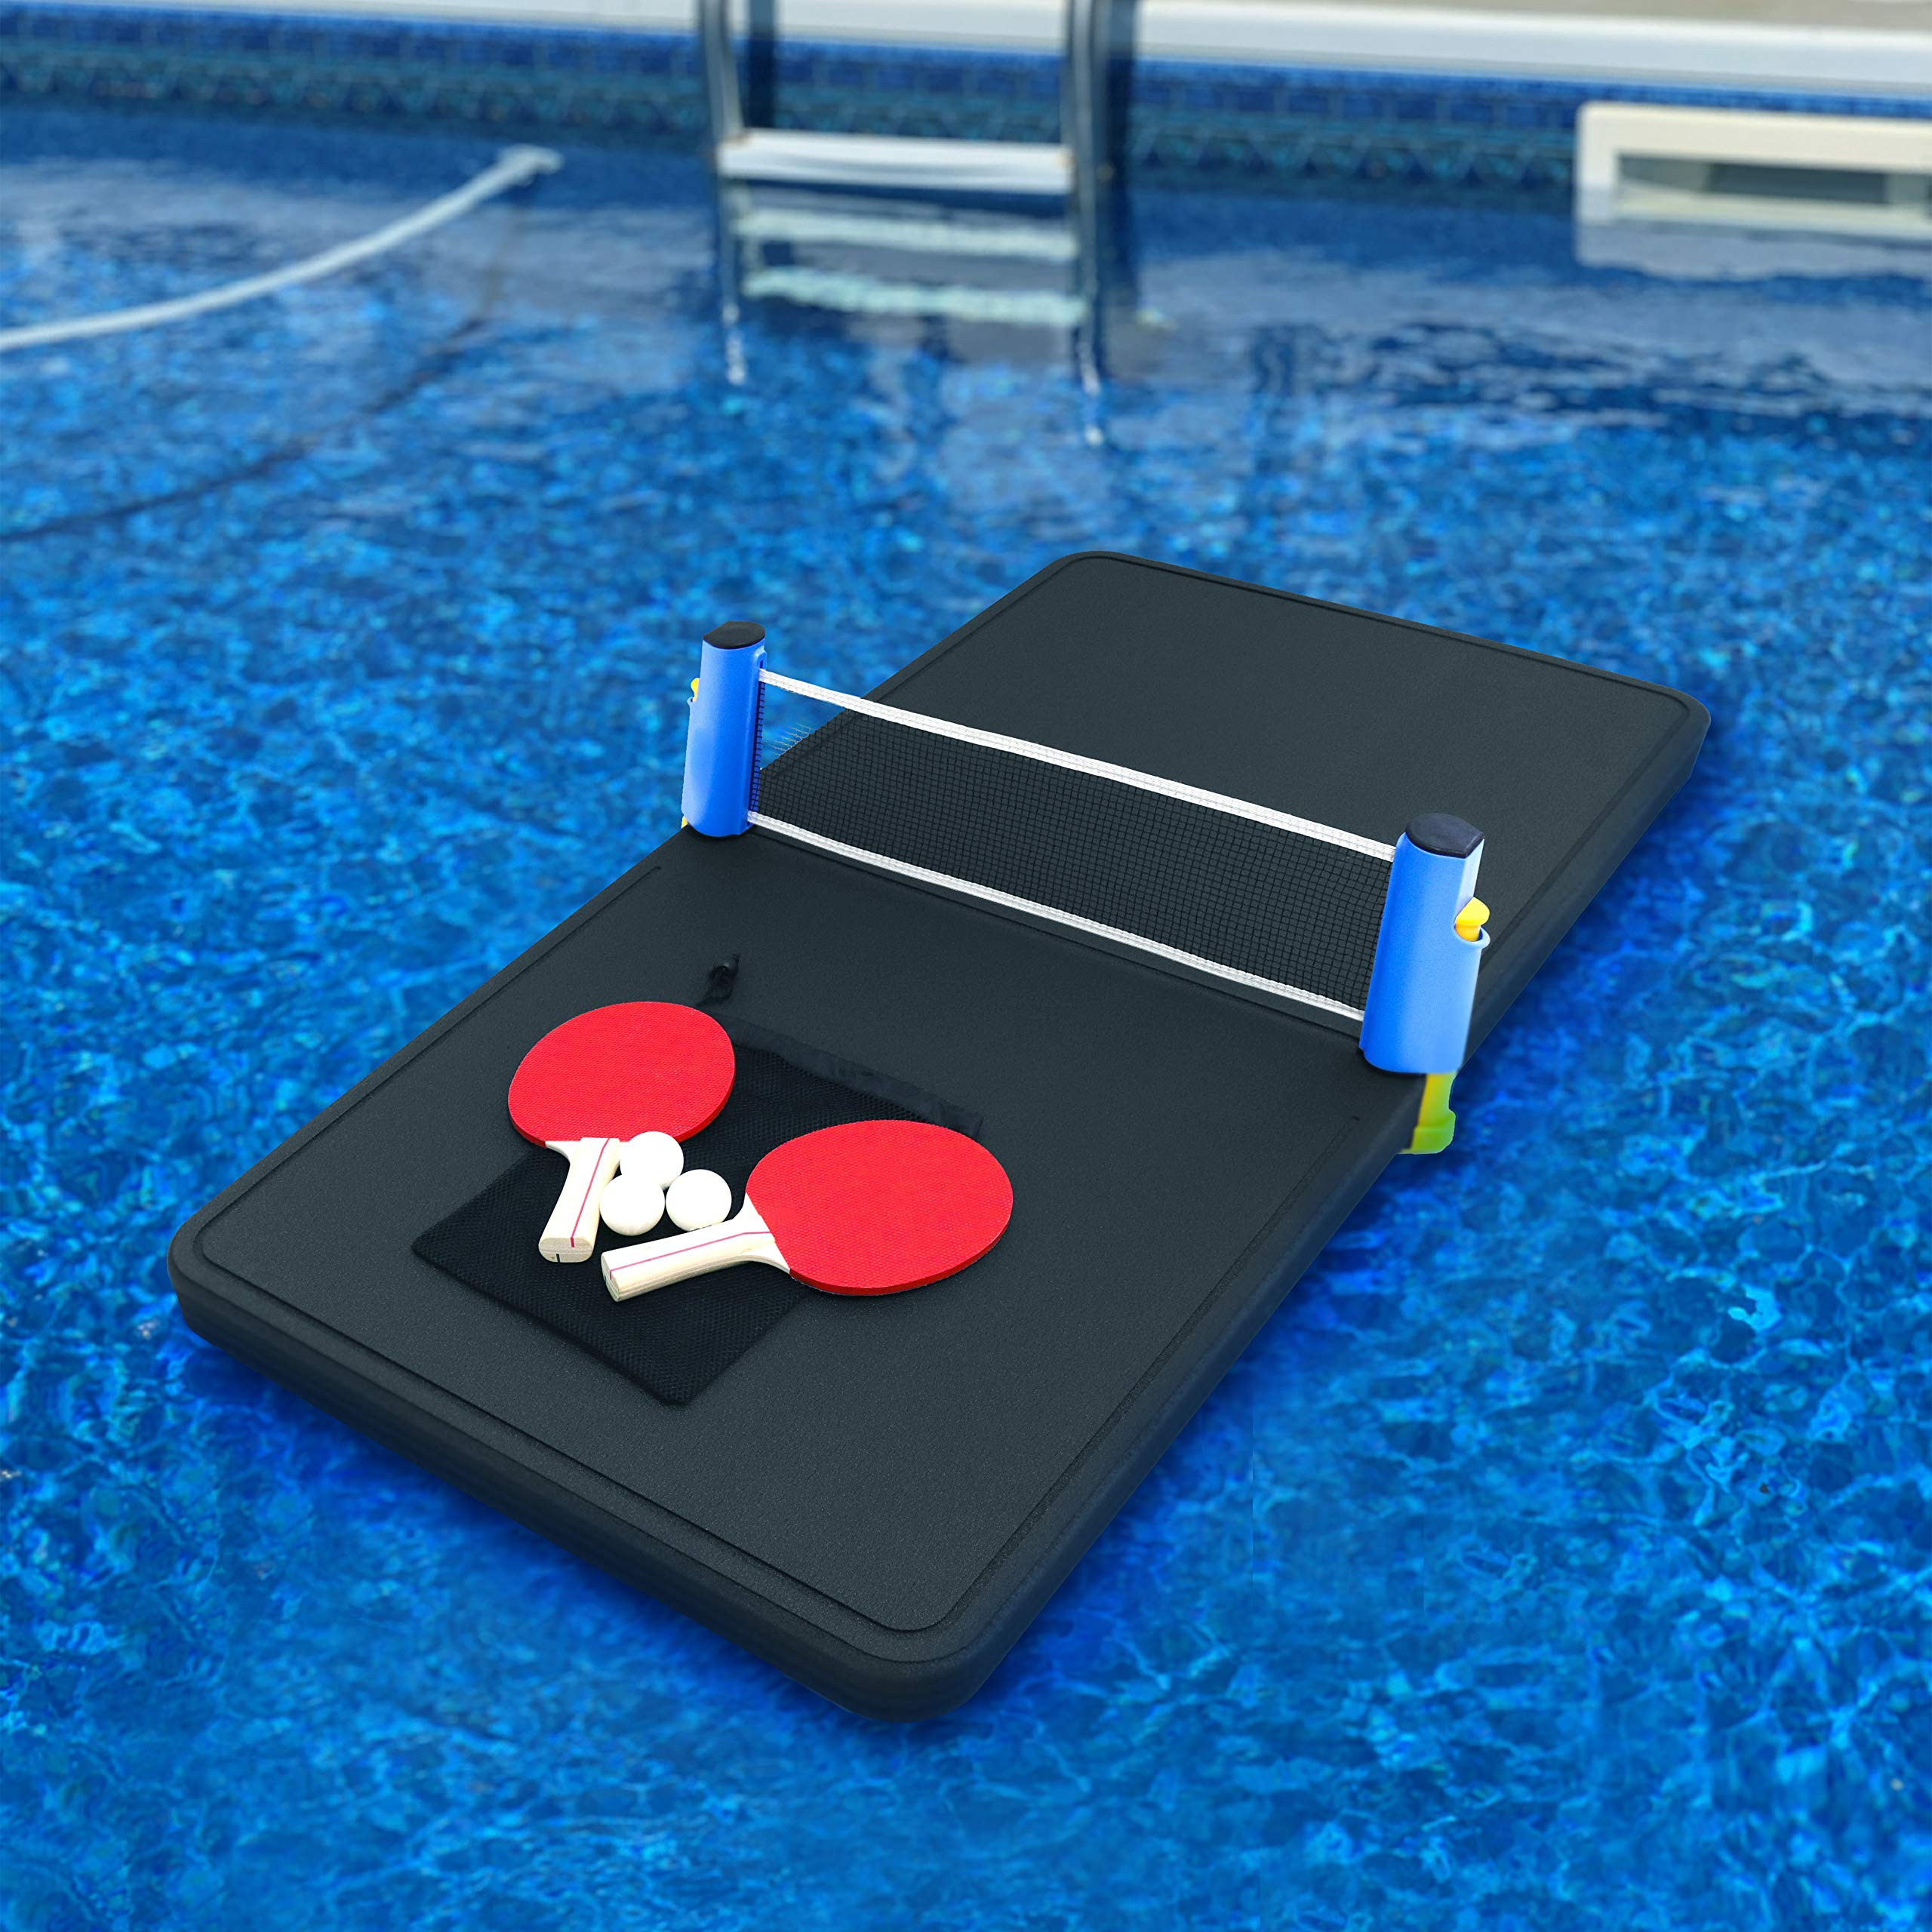 Polar Whale Floating Ping Pong Table Pool Party Table Tennis Float Game Durable Black Foam 4 Feet Long Uv Resistant Includes Net Paddles and Balls Made in USA by Polar Whale